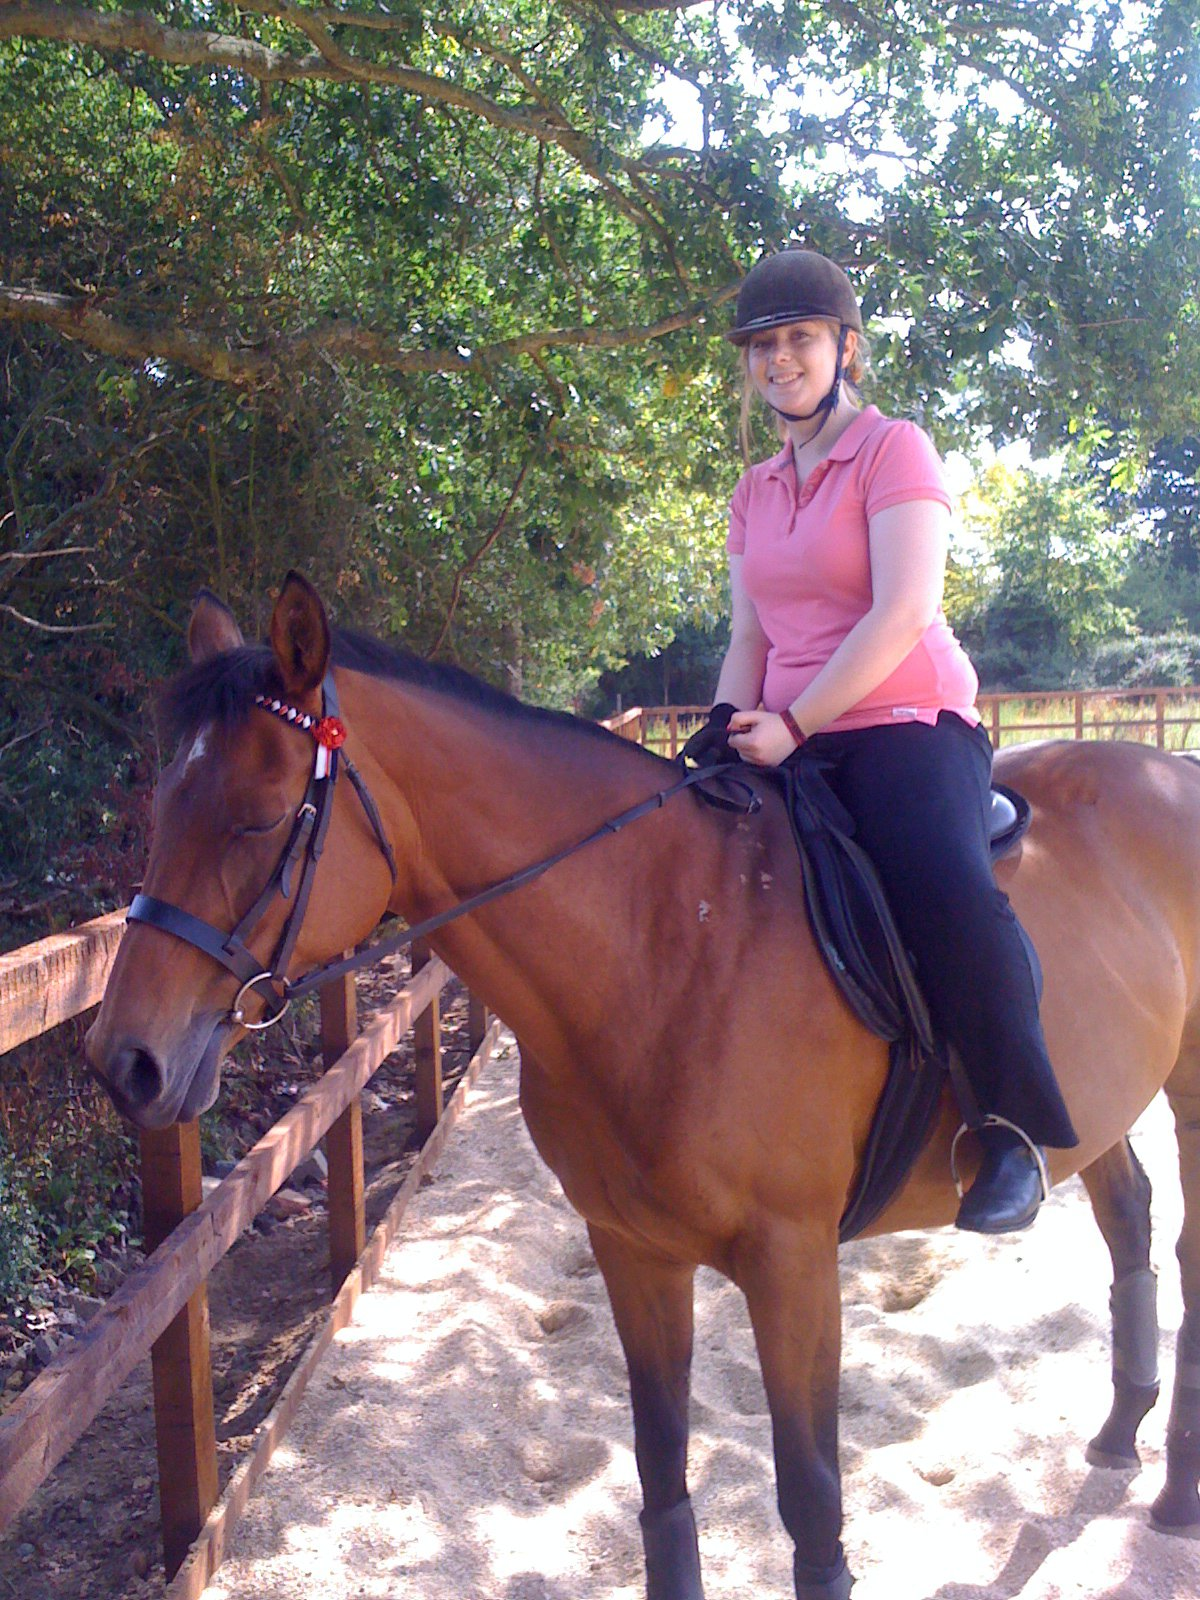 thoroughbred-mare-chestnut-riding-lesson